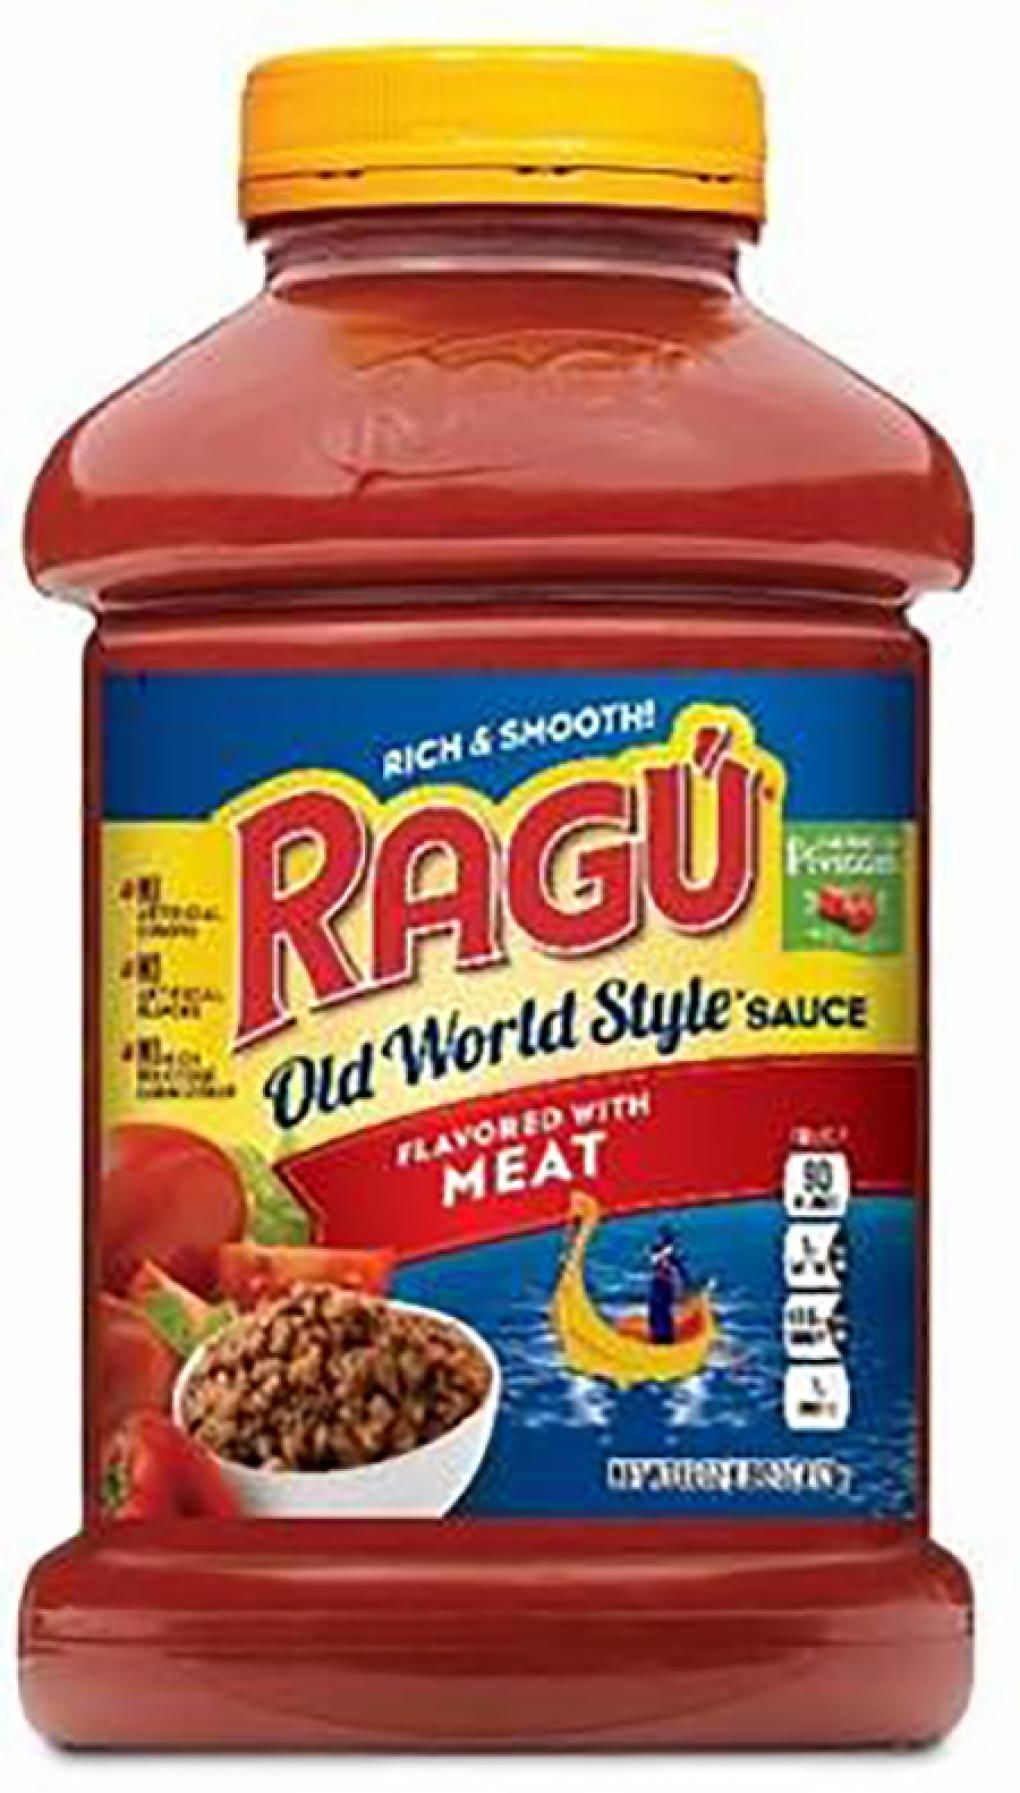 A recall of Ragu pasta sauces in the U.S. has been issued because of concern the sauce may contain fragments of plastic. (Photo: Mizkan America)